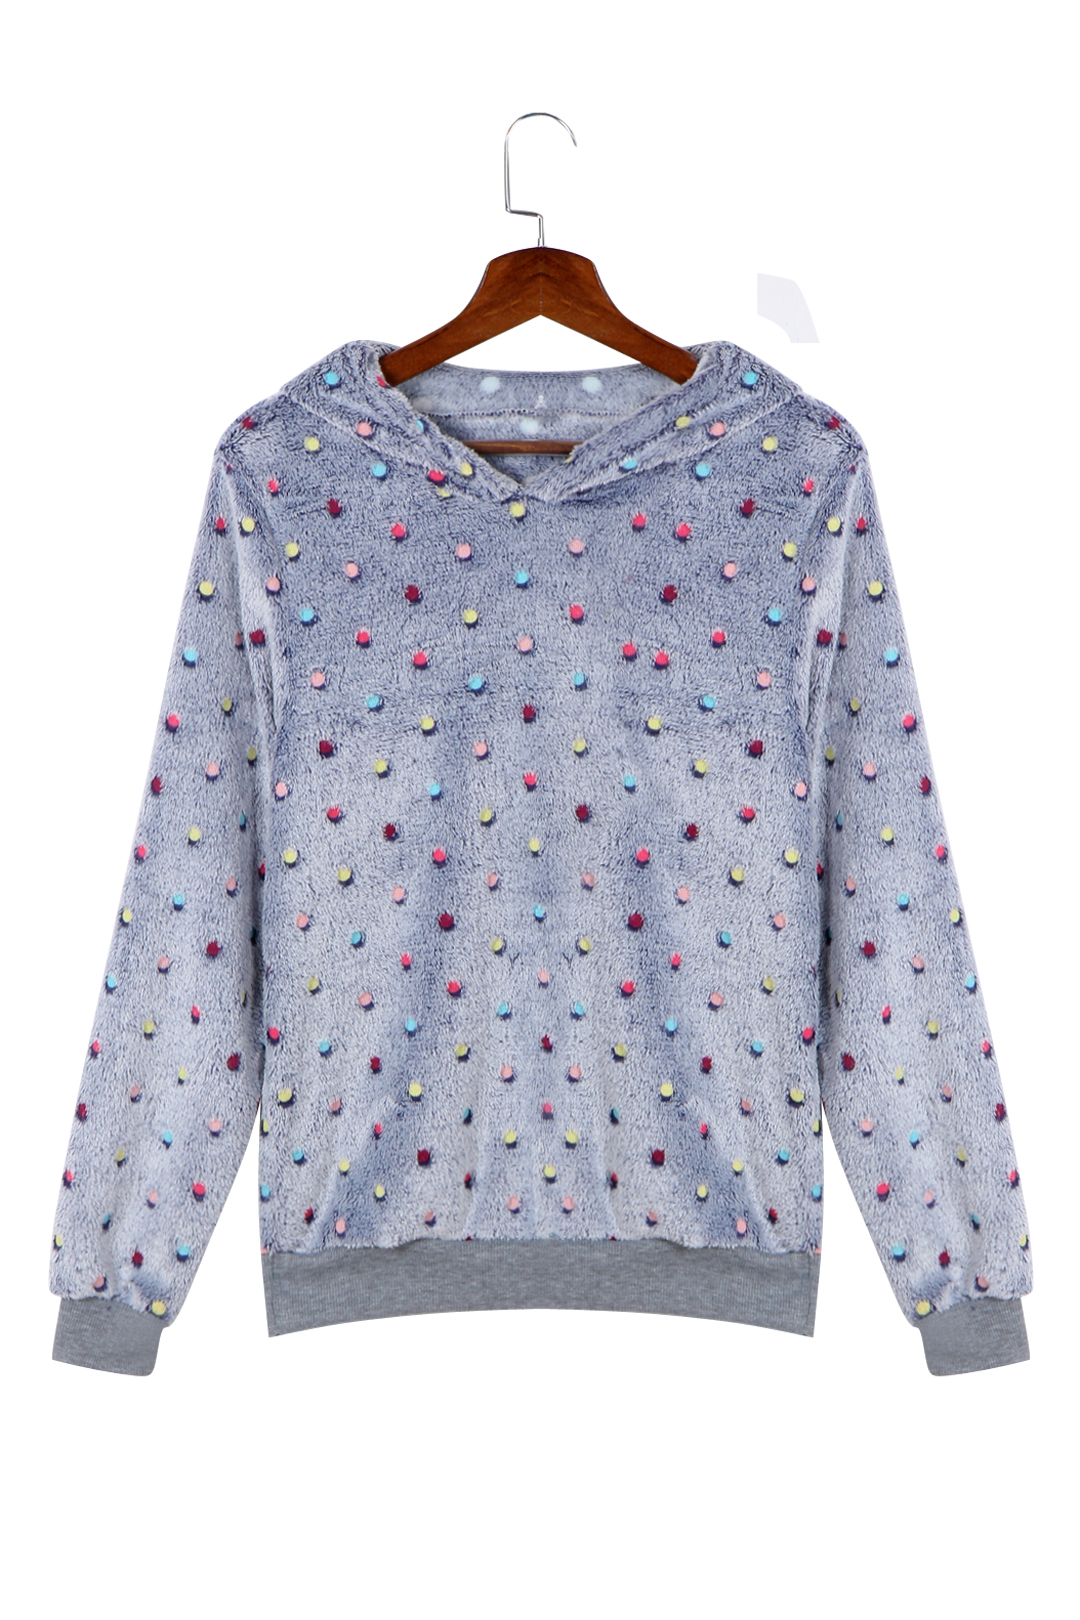 Colorful Wave Point Pattern Causal Hoodie with Hood in Blue nirmal kumar singh and ravi prakash dubey fixed point theorems in topological spaces with application to fratal